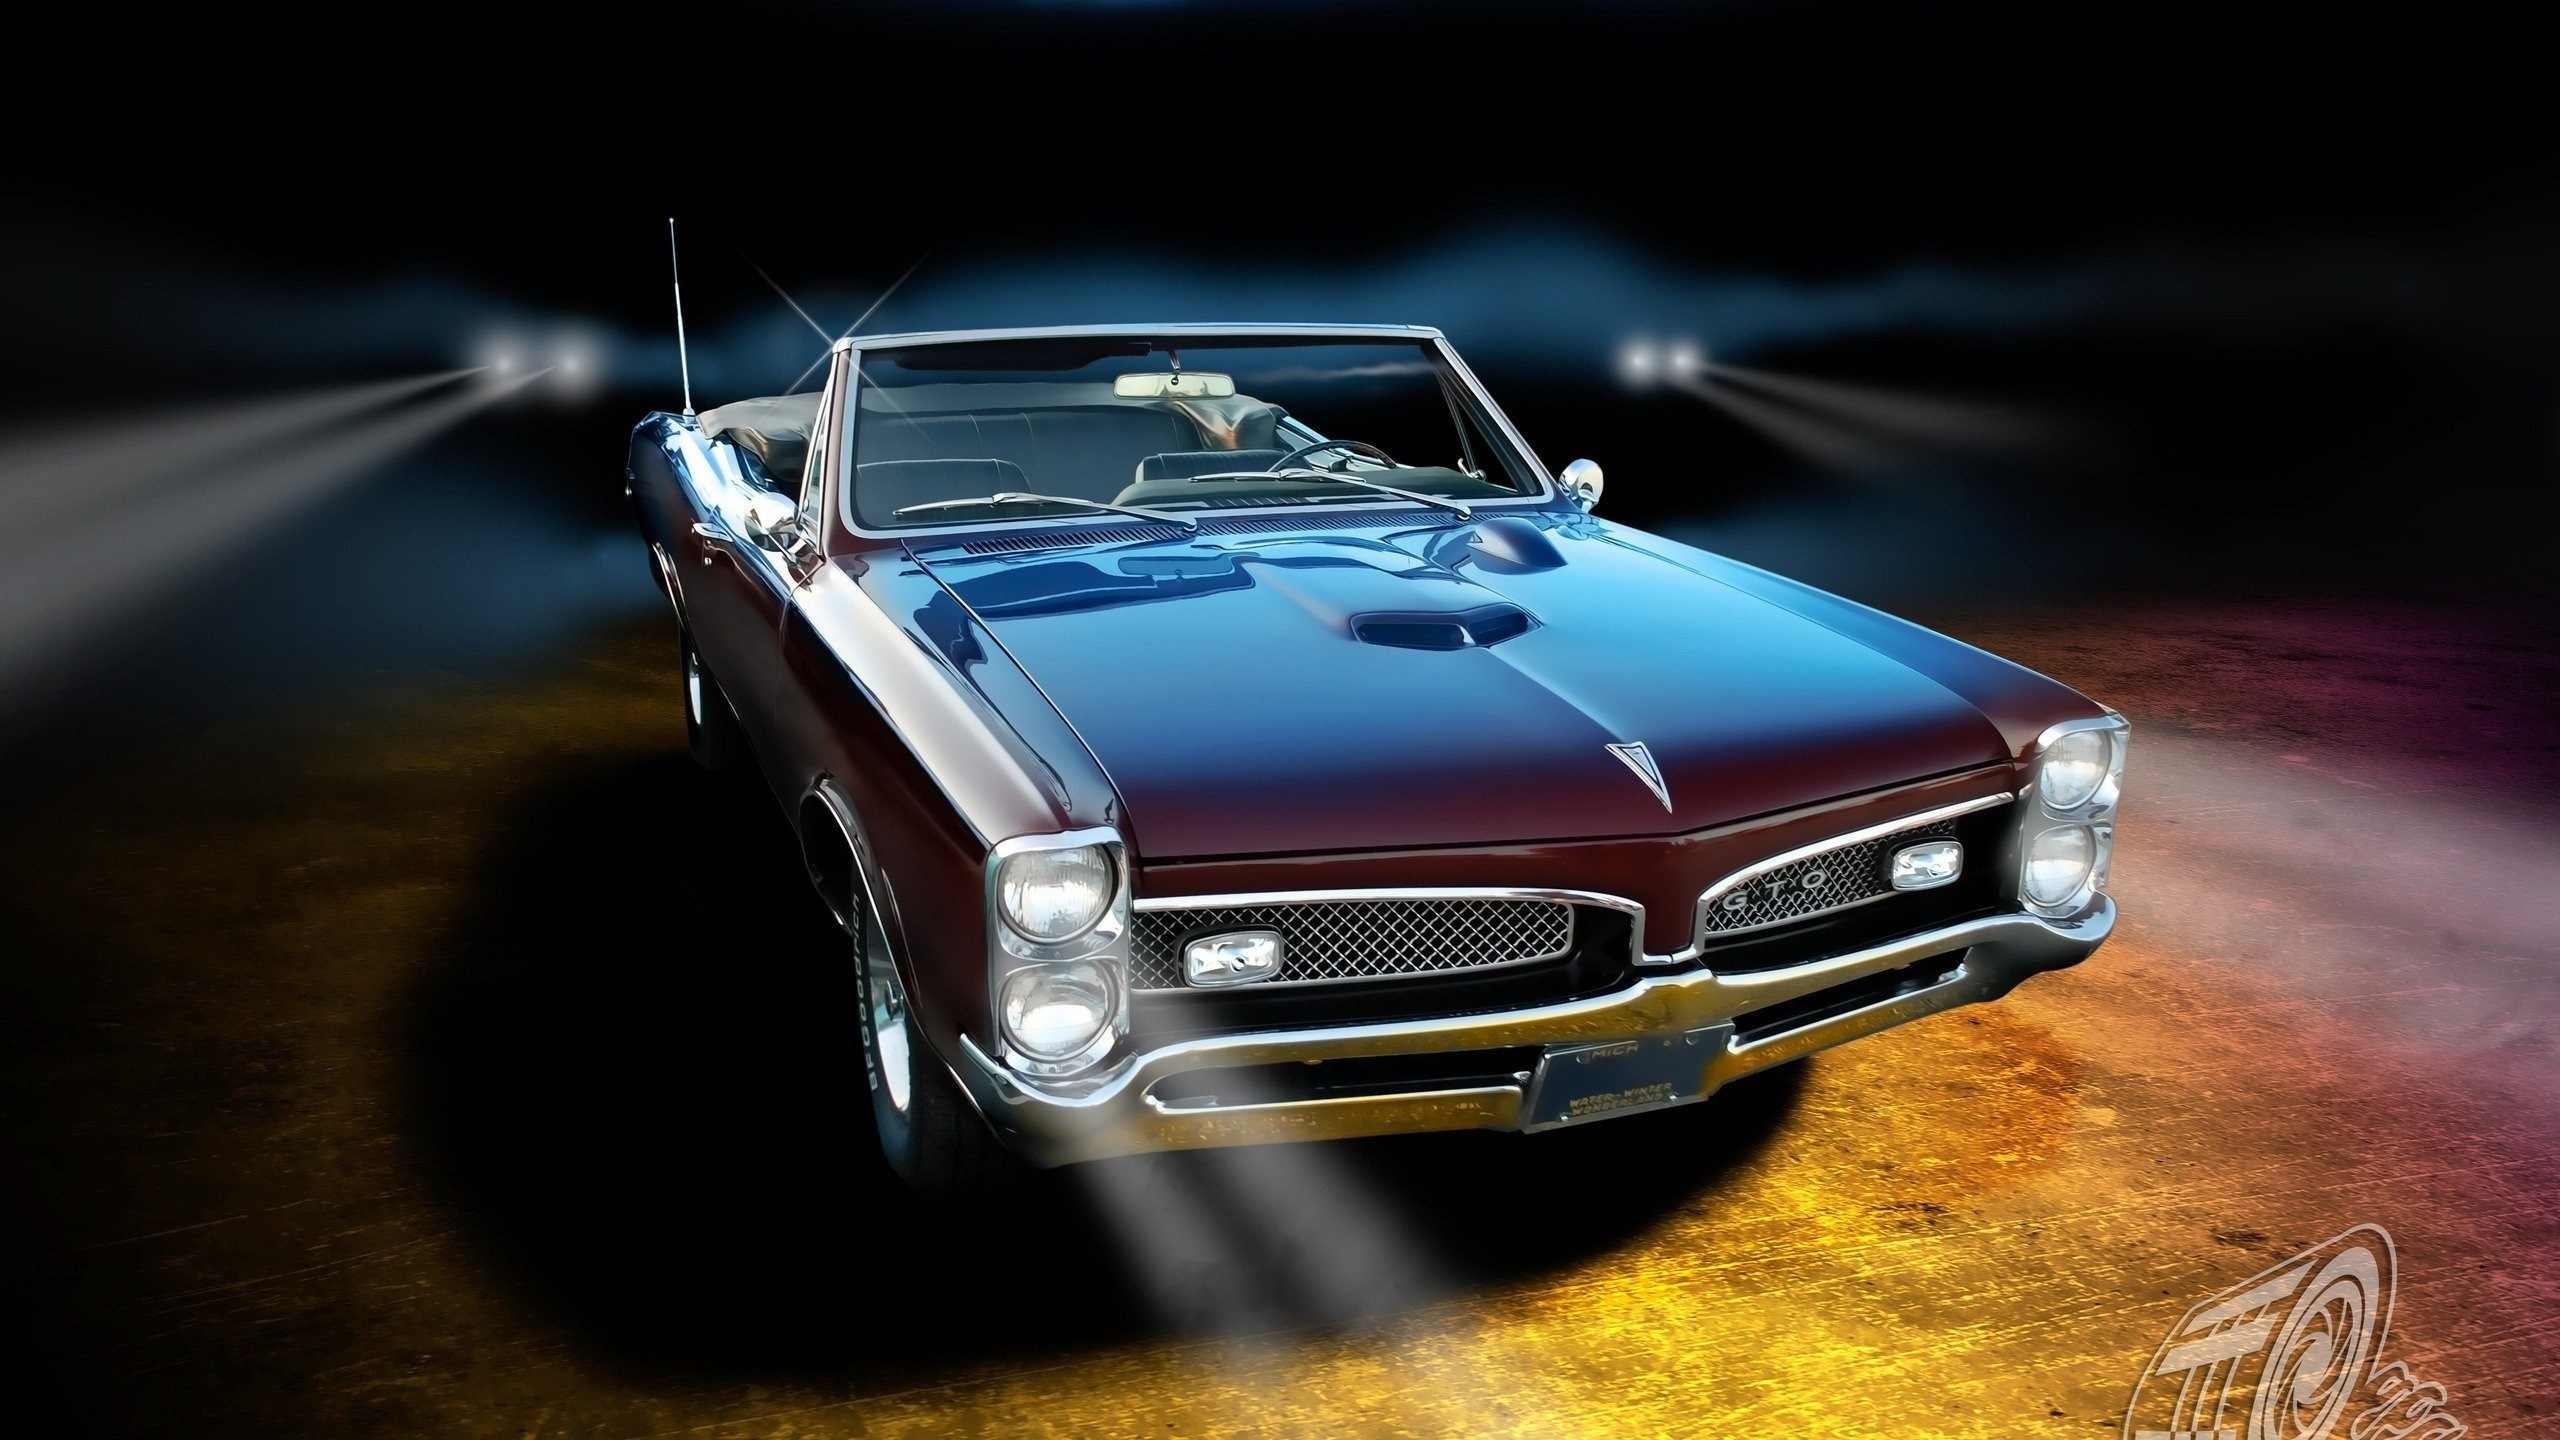 Classic Muscle Cars Wallpaper 70 Images